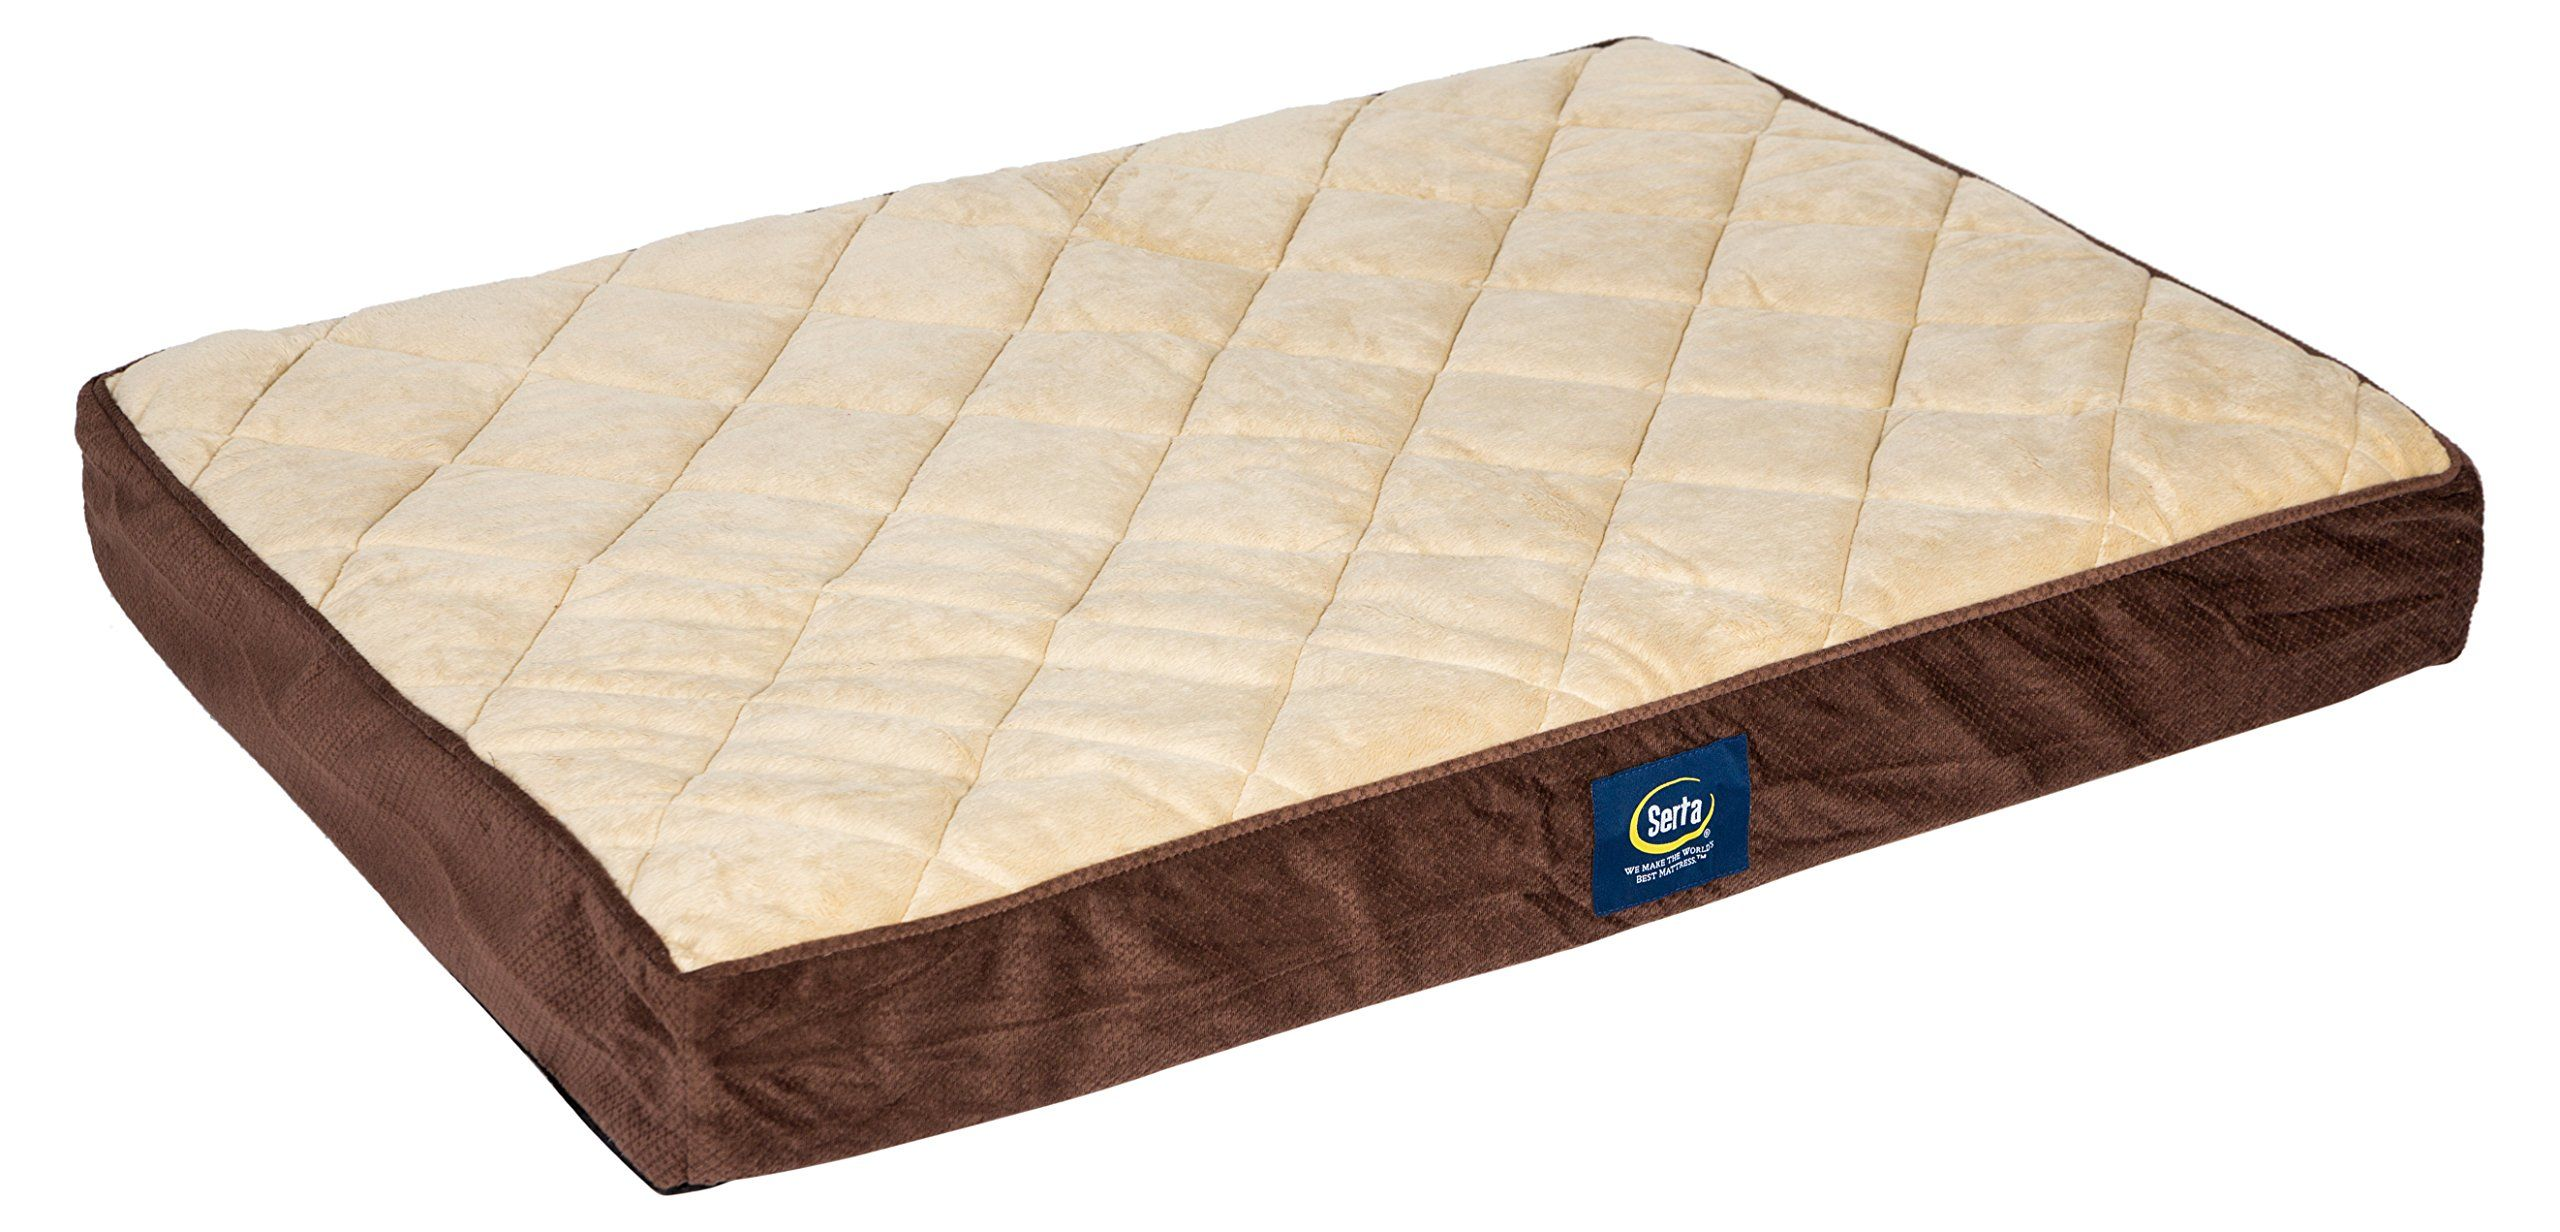 Serta Ortho Quilted Pillowtop Pet Bed Large Mocha ** Read